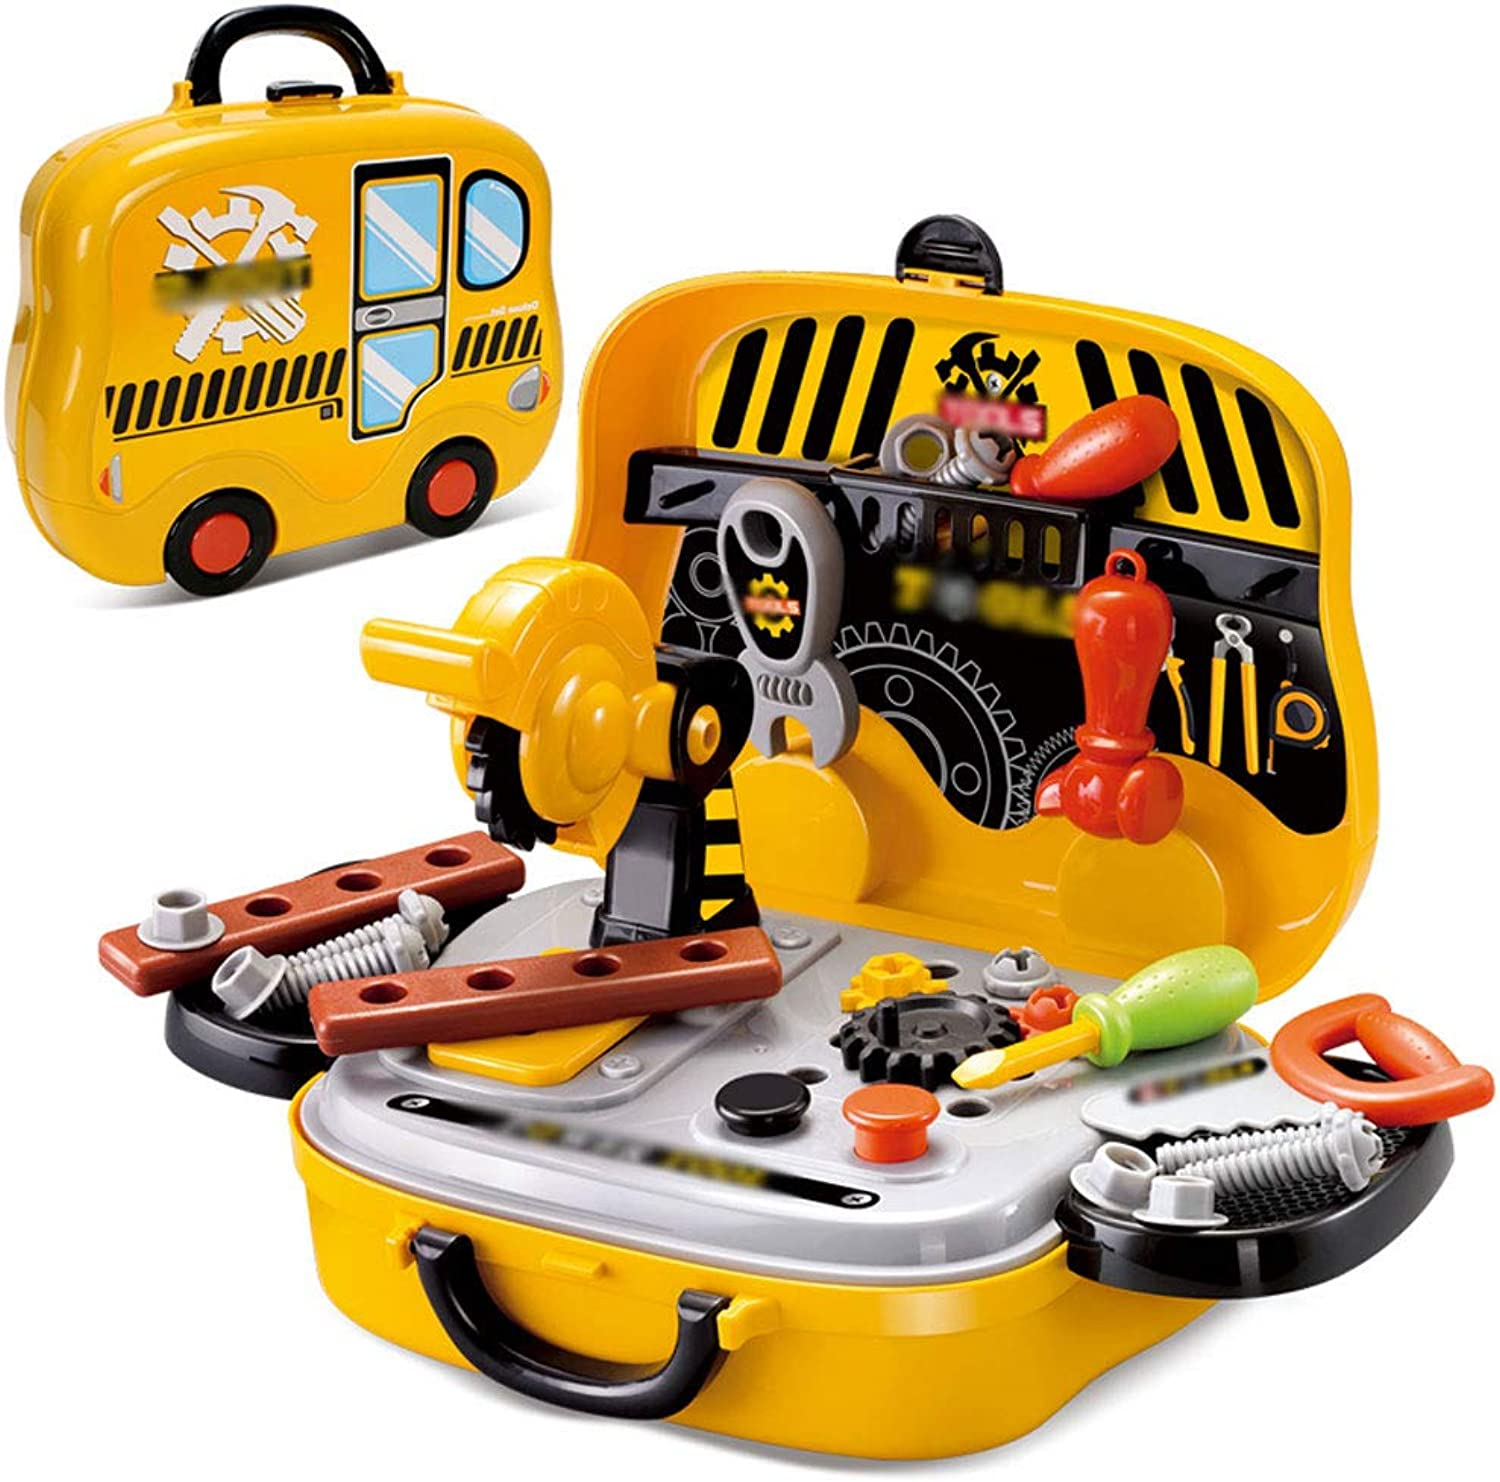 Hai Yan Boutique Toys Toys - Kids Toolbox Toy Set Repair Baby Repair Tool Desk Screwdriver - Boys Birthday Gift